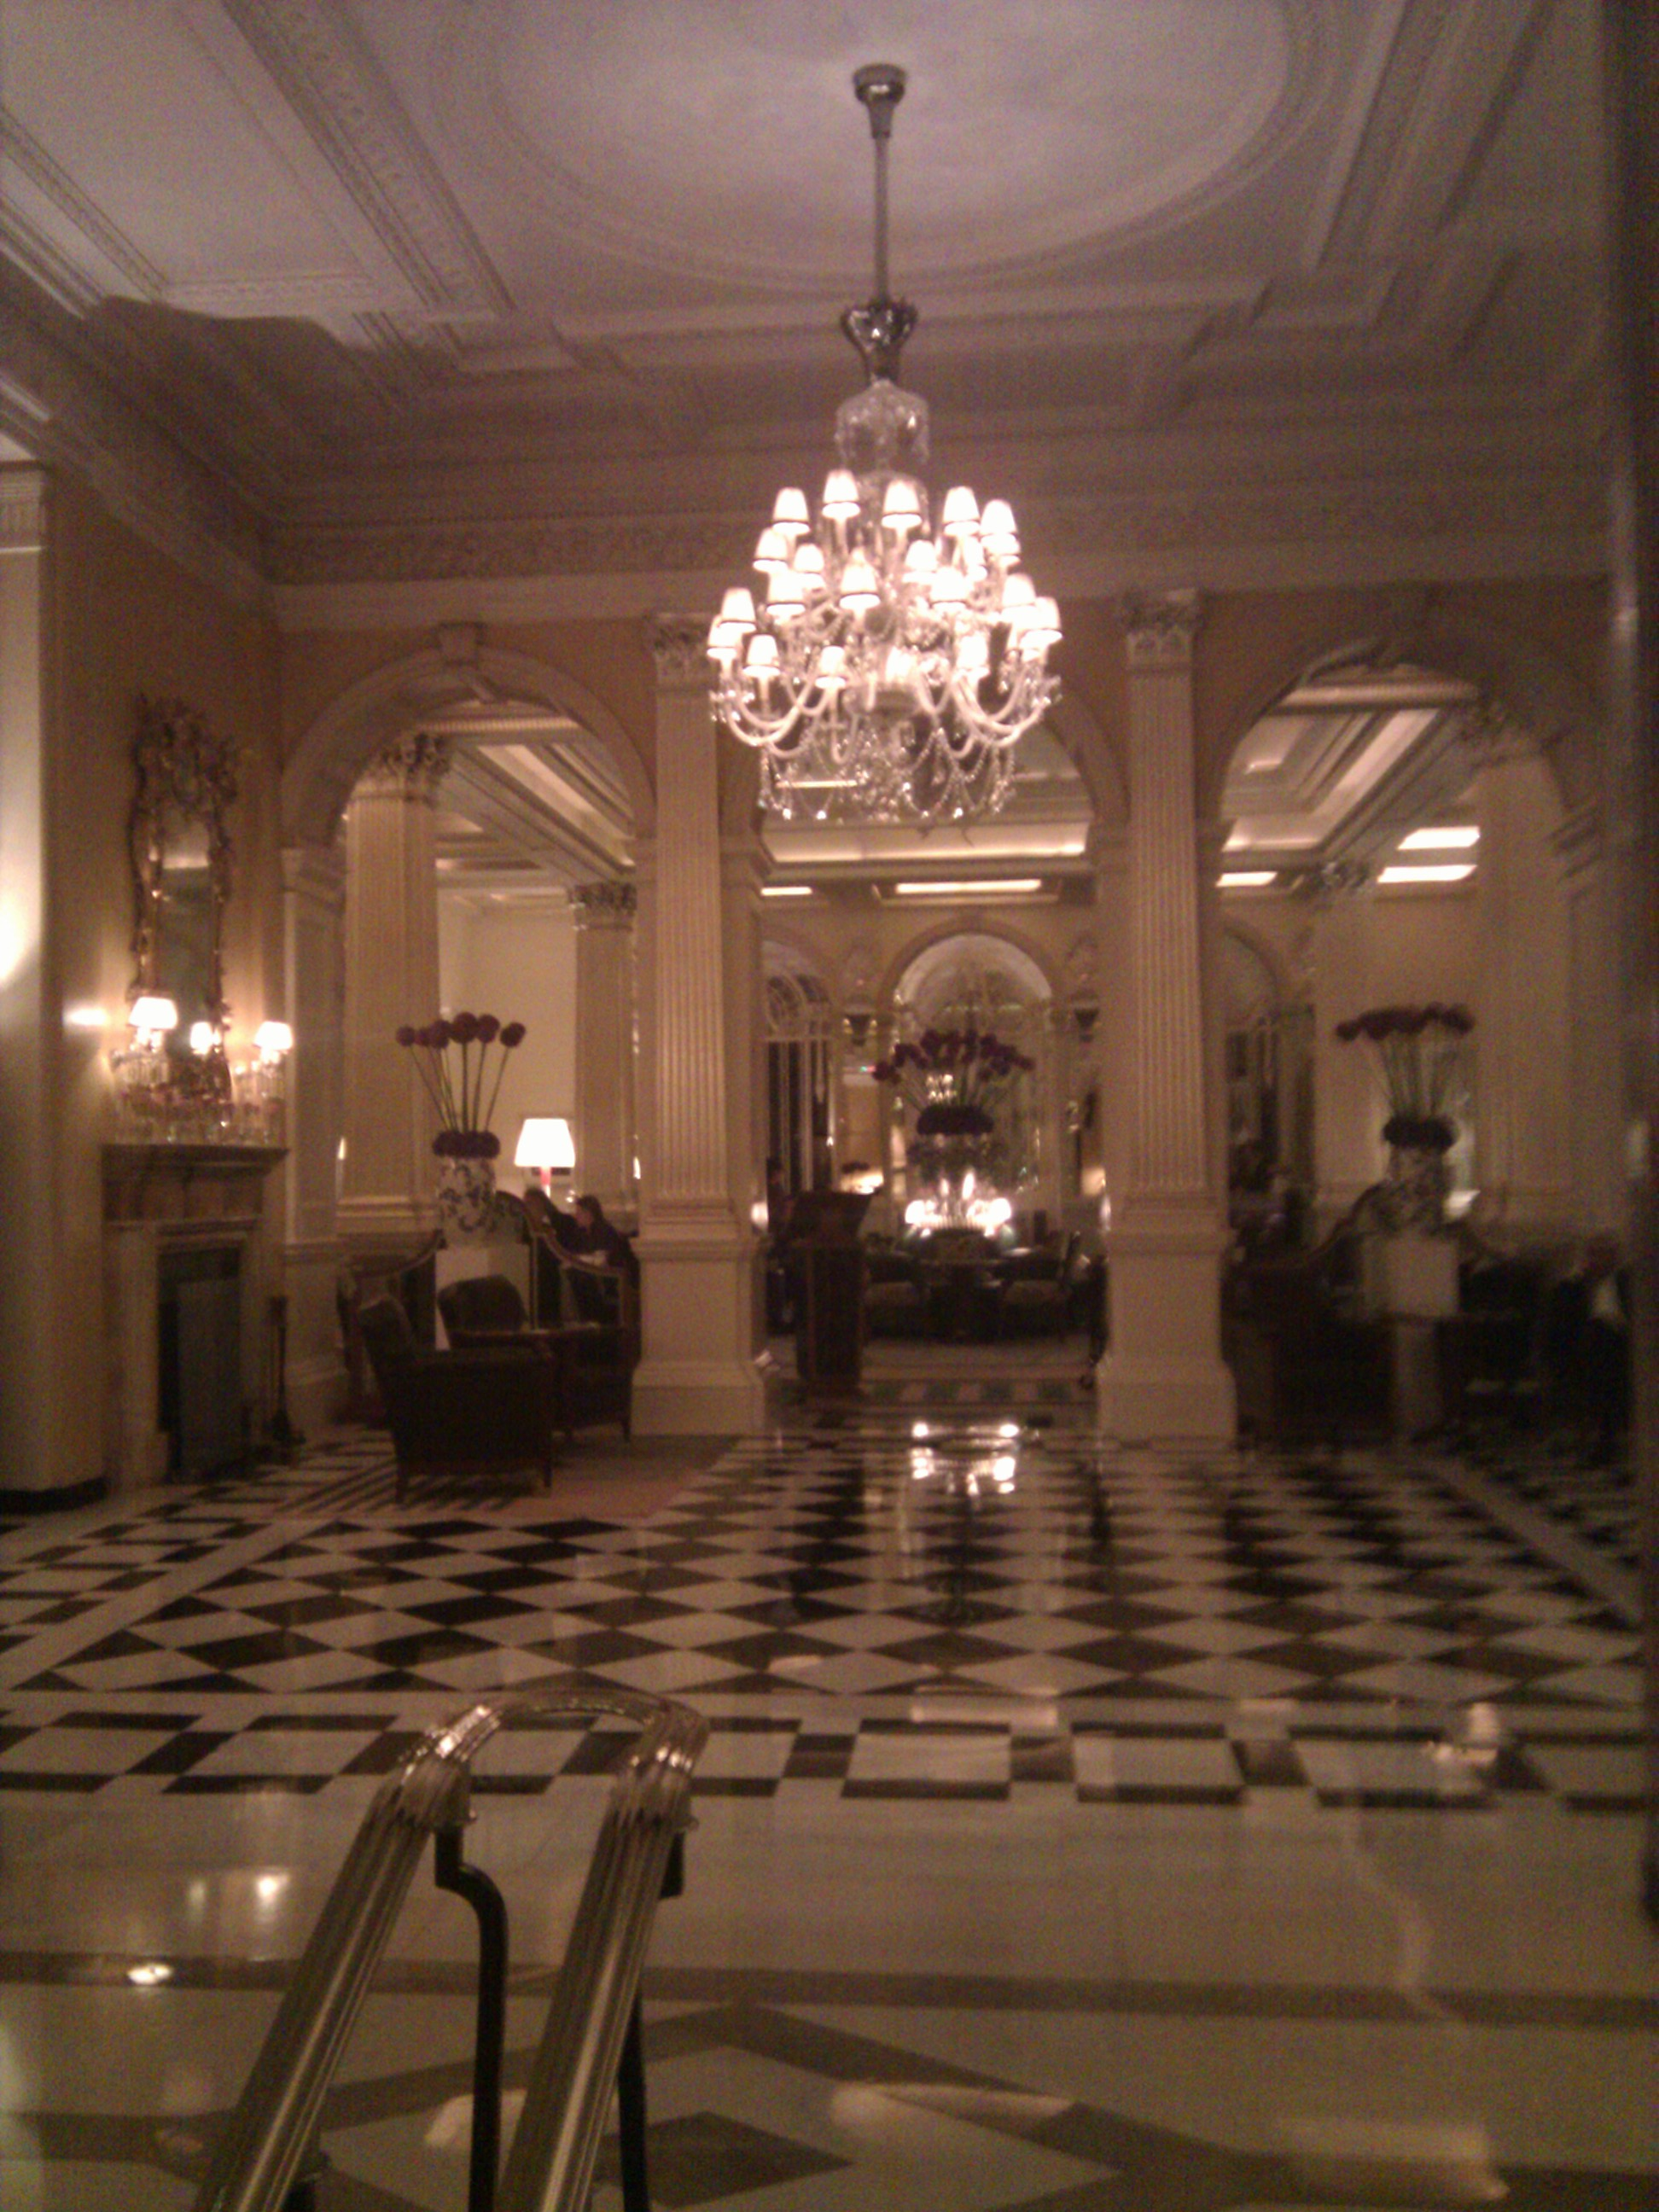 Gordon ramsay at claridge s hotel from april to table for 1920s hotel decor